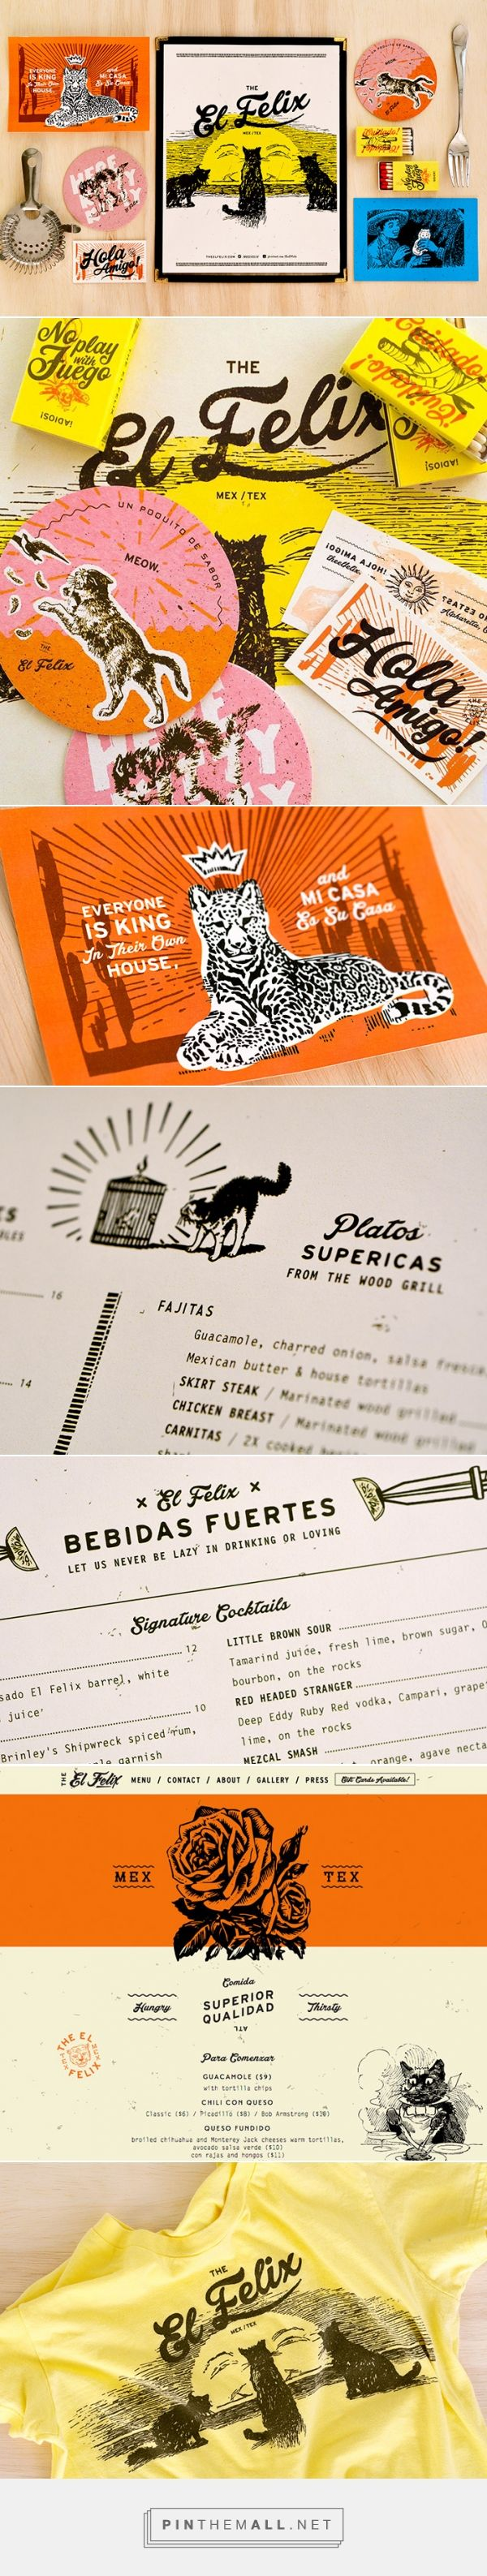 The El Felix Restaurant Branding by Green Olive Media  | Fivestar Branding Agency – Design and Branding Agency & Inspiration Gallery